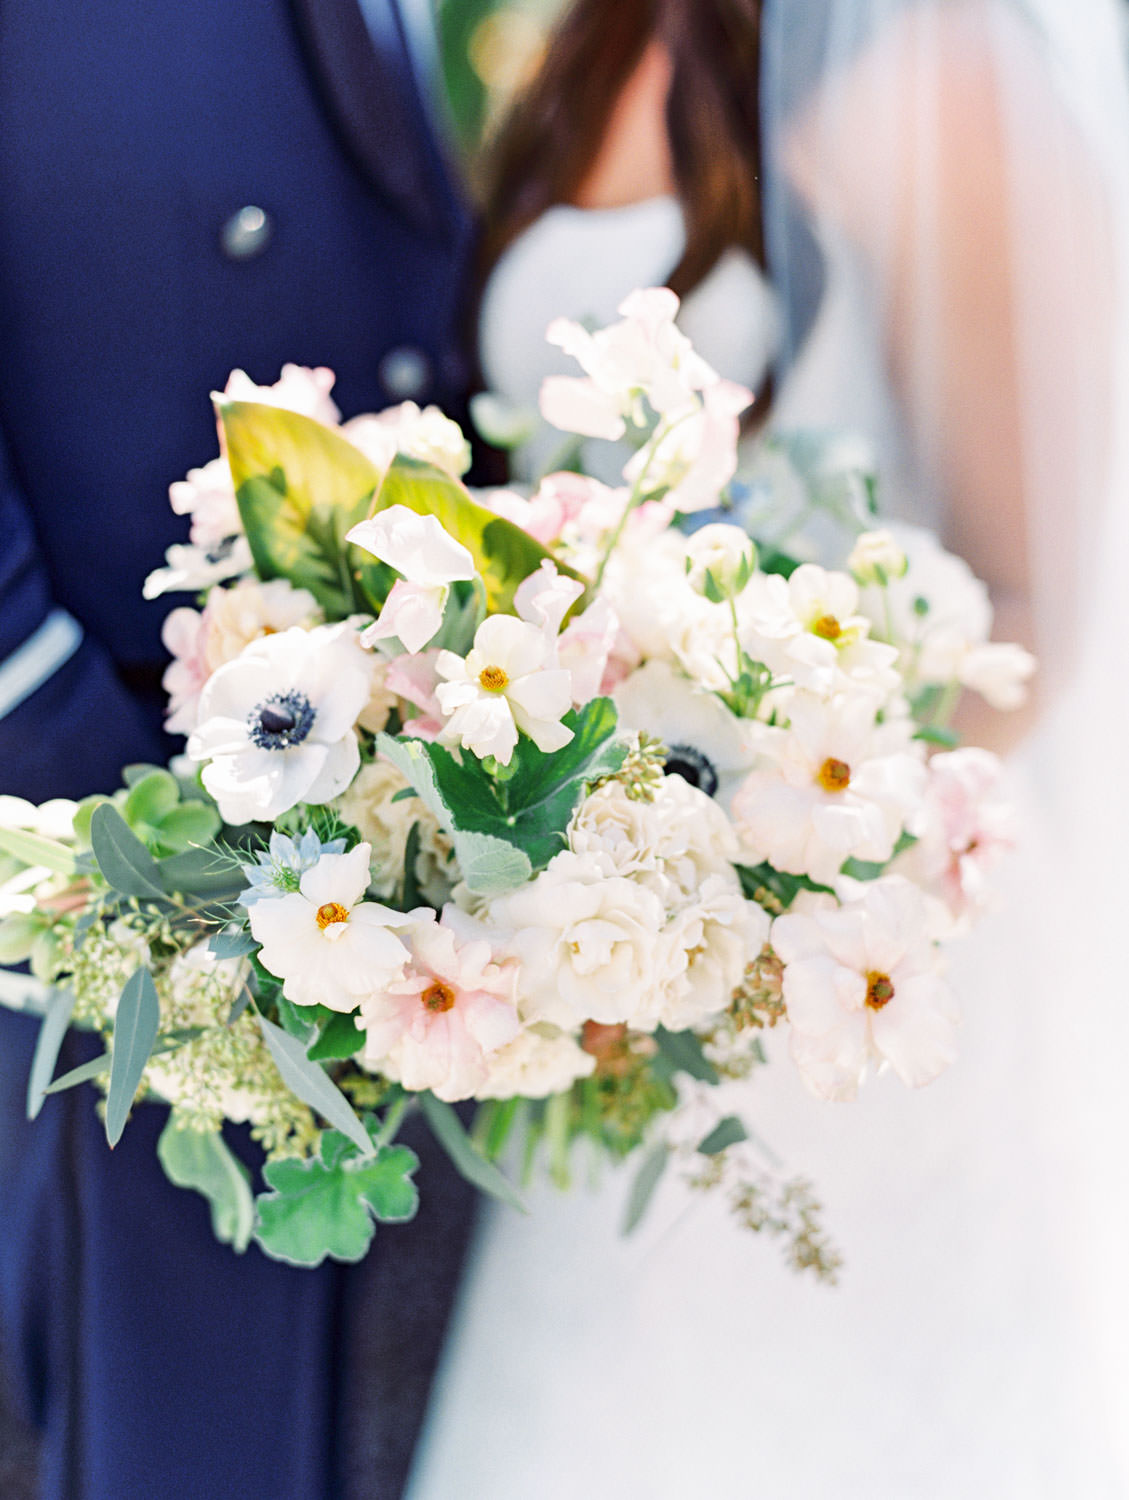 Bride's bouquet with anemones, greenery, and roses captured on film. Wedding at Humphreys Half Moon Inn by Cavin Elizabeth Photography